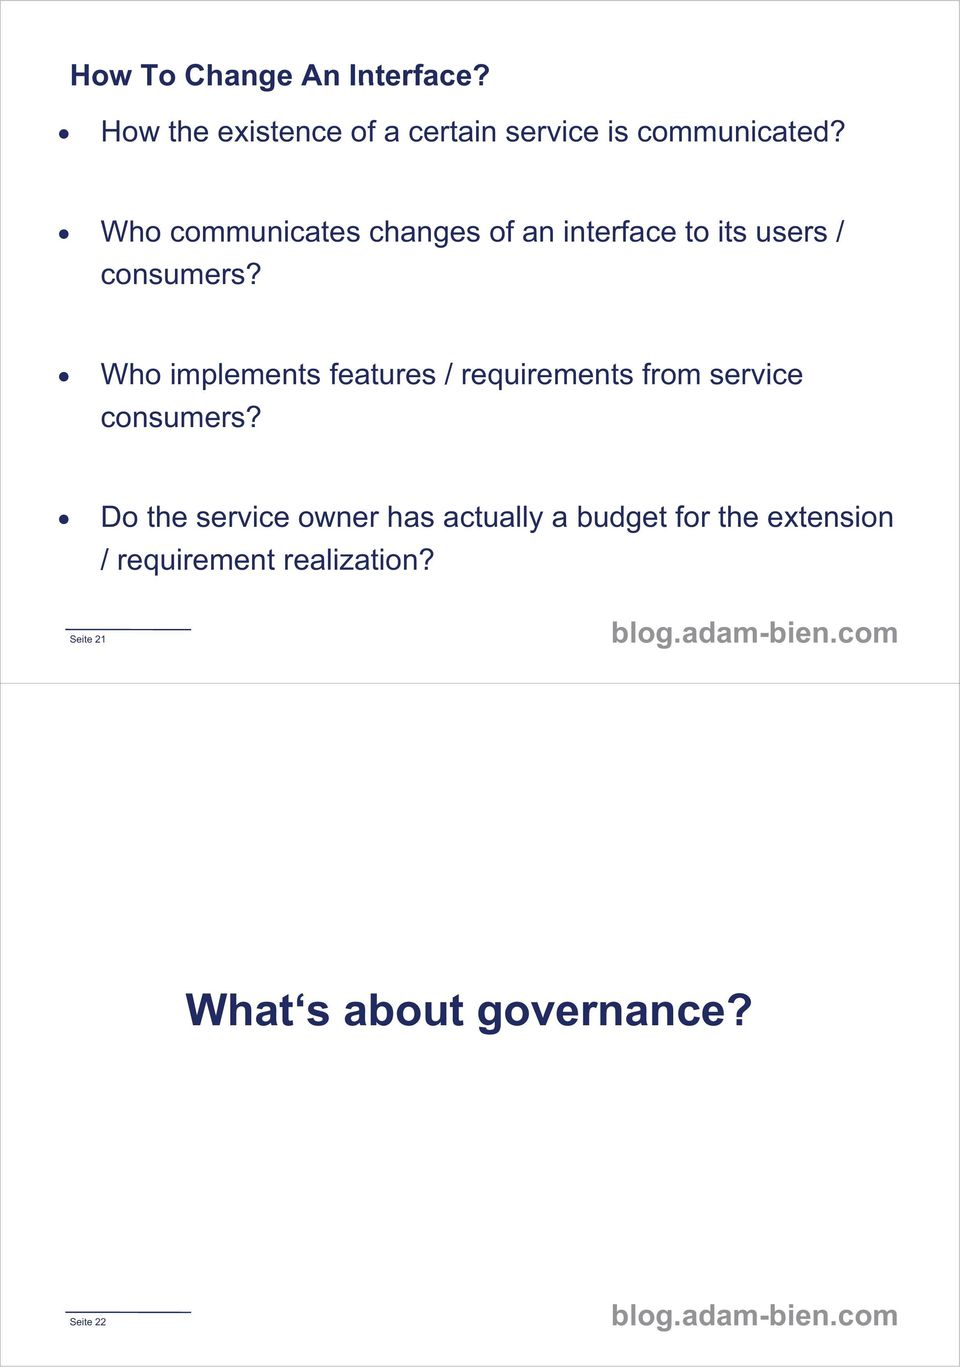 Who implements features / requirements from service consumers?